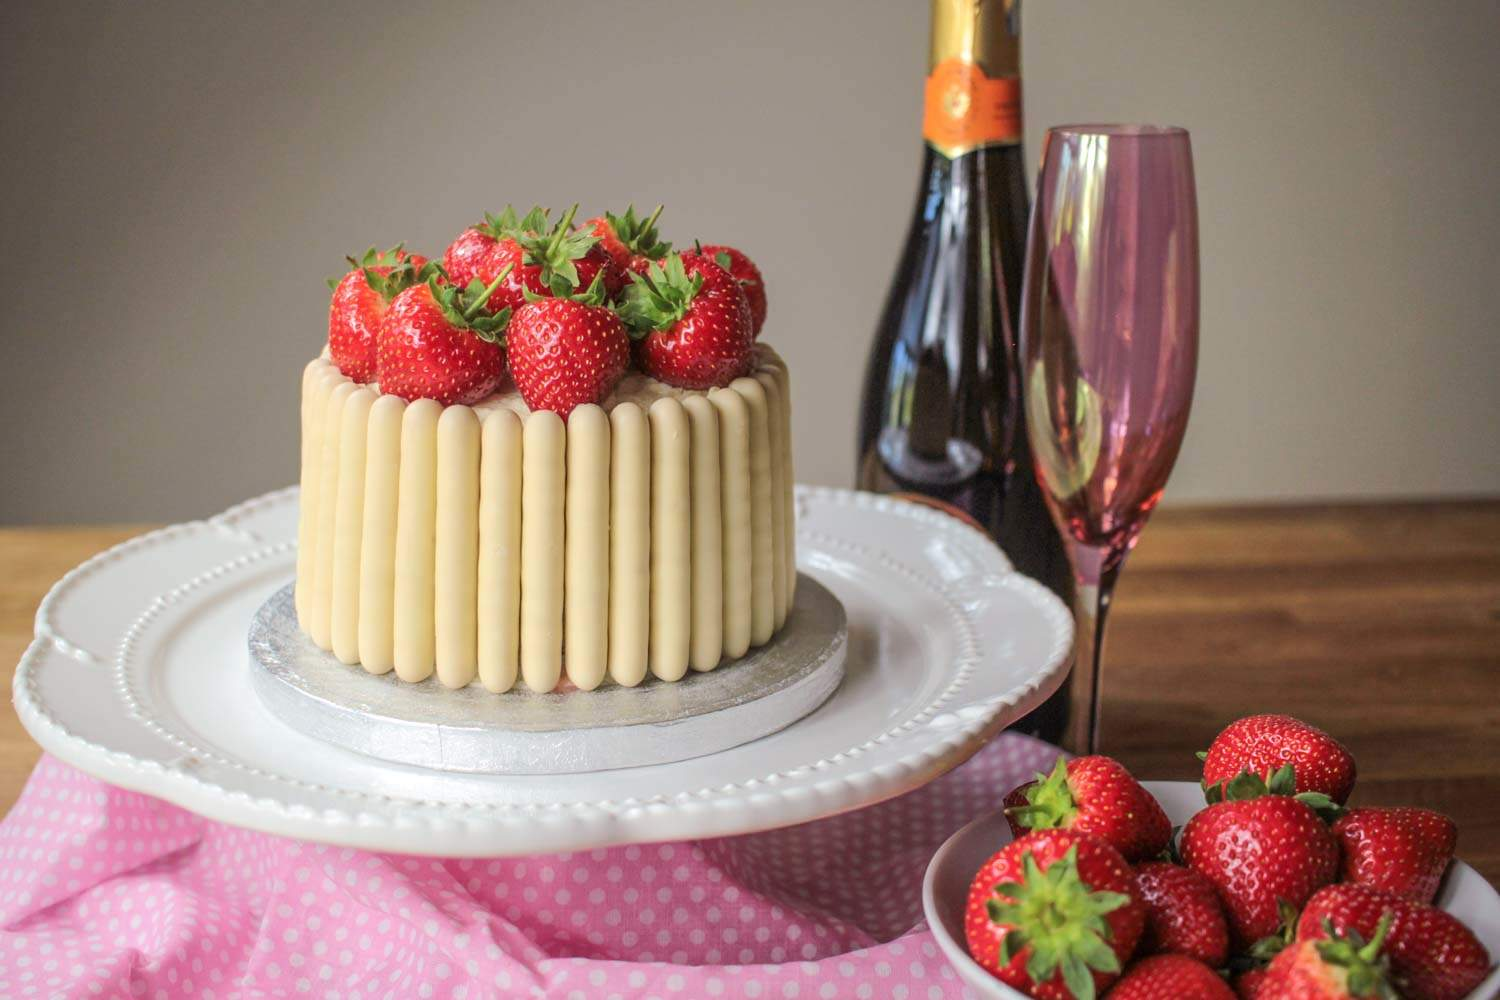 white-chocolate-strawberry-and-prosecco-cake-3 - Globe Scoffers | globescoffers.com